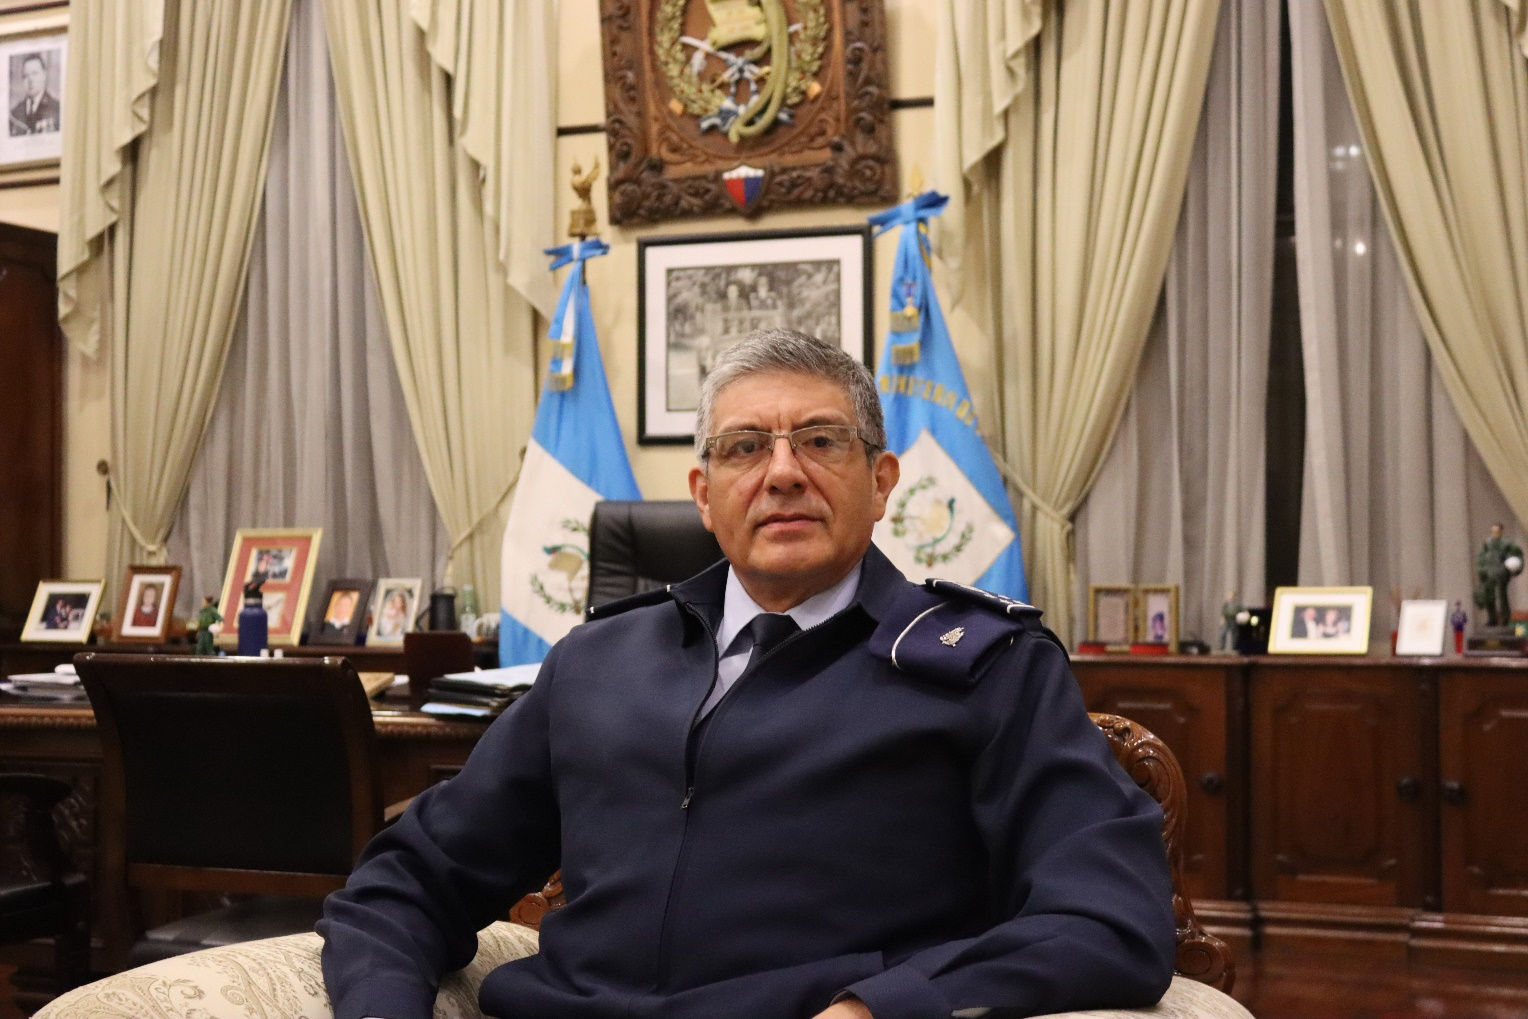 Guatemalan Army Seeks Further Participation in Peacekeeping Missions, Greater Gender Integration